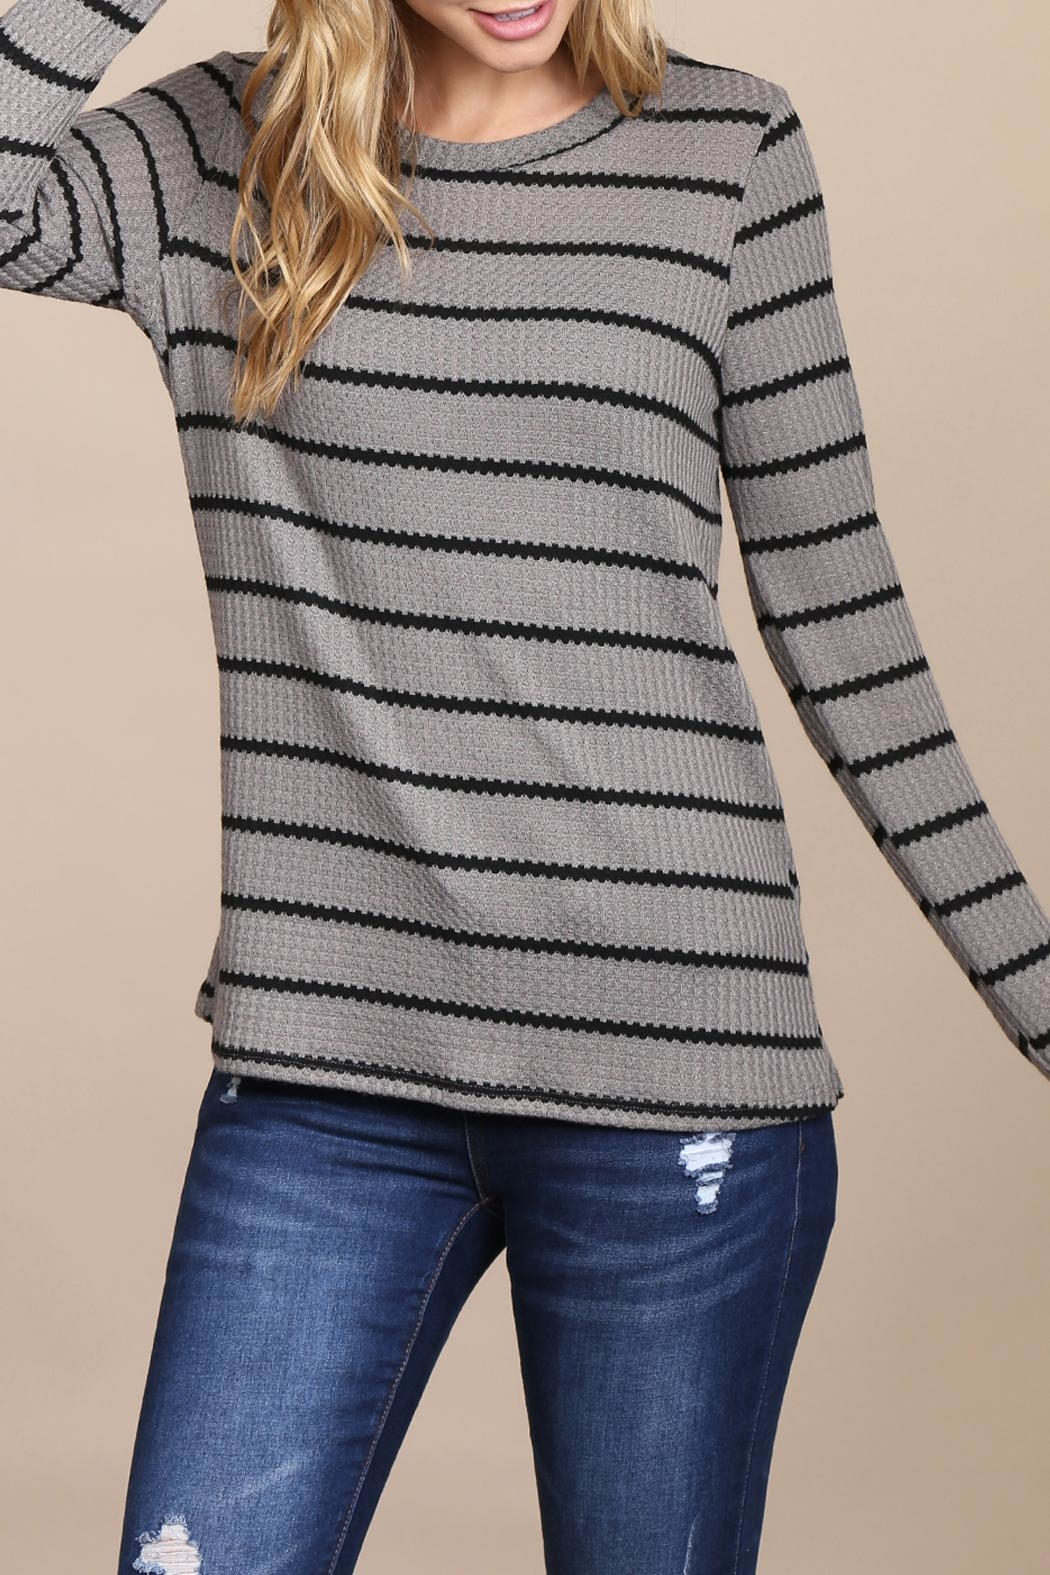 Riah Fashion Long-Sleeved-Round-Neck-Striped Waffle Top - Front Full Image